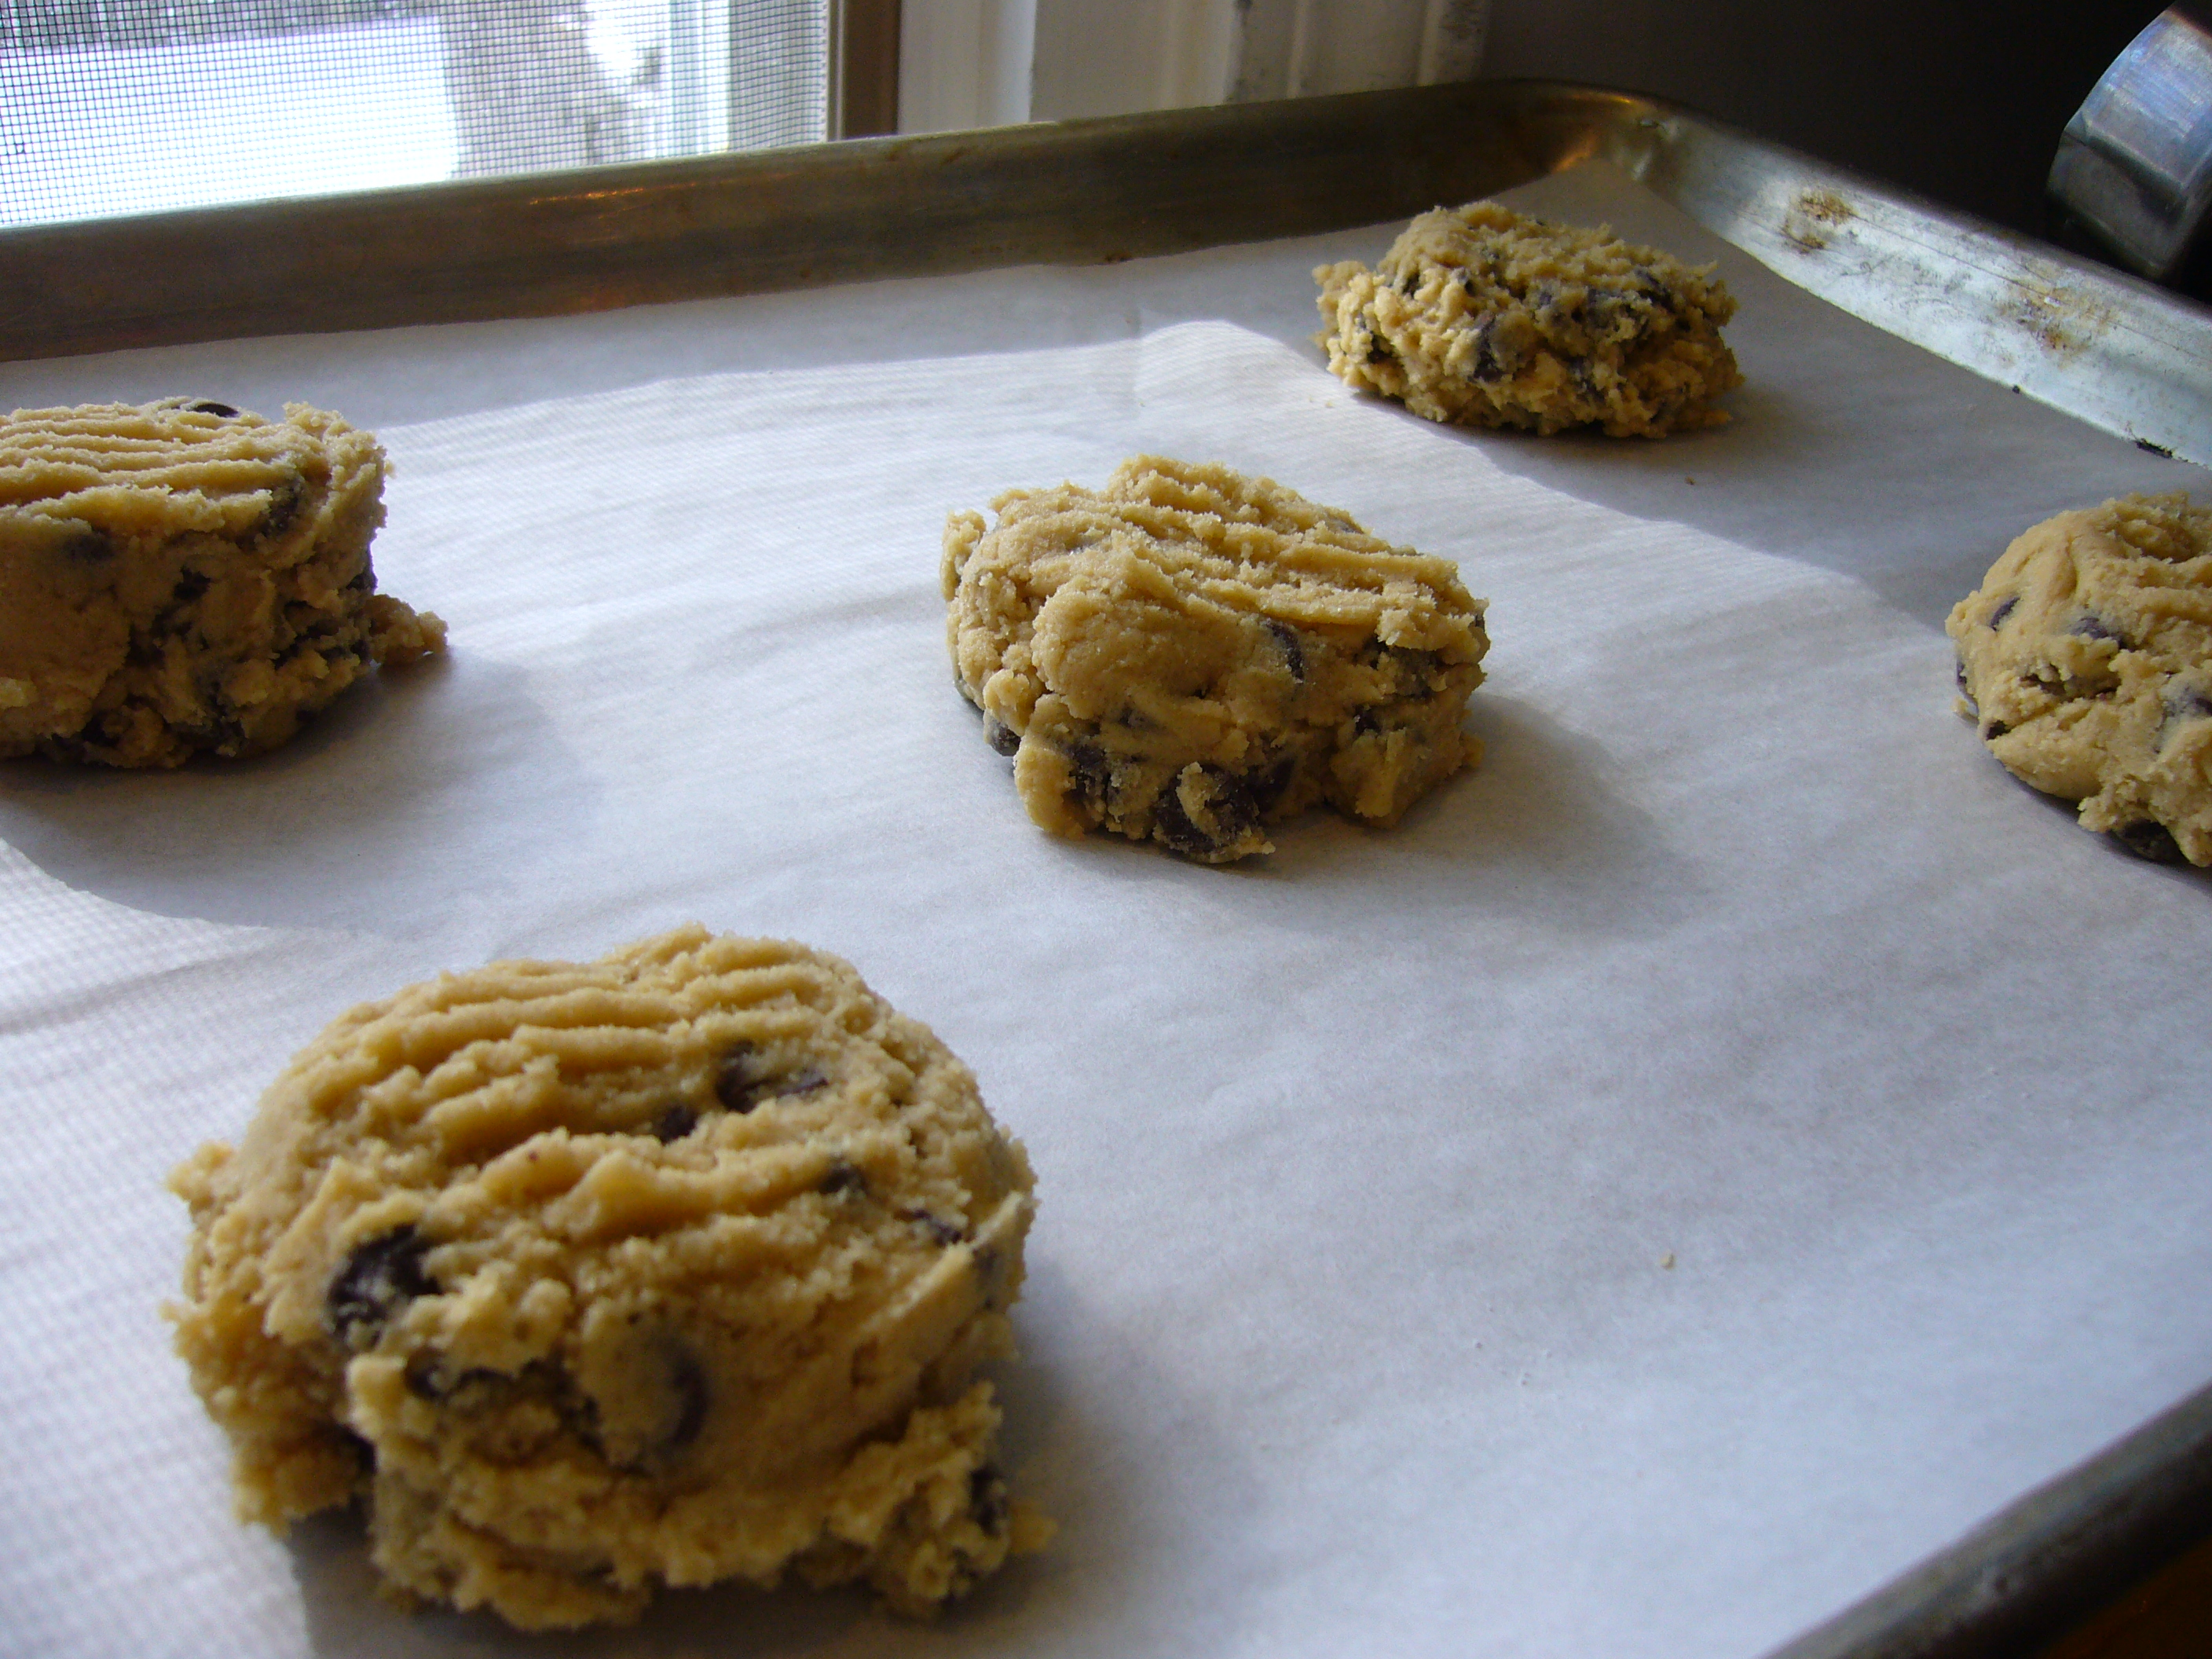 Chubby Chewy Chocolate Chip Cookies